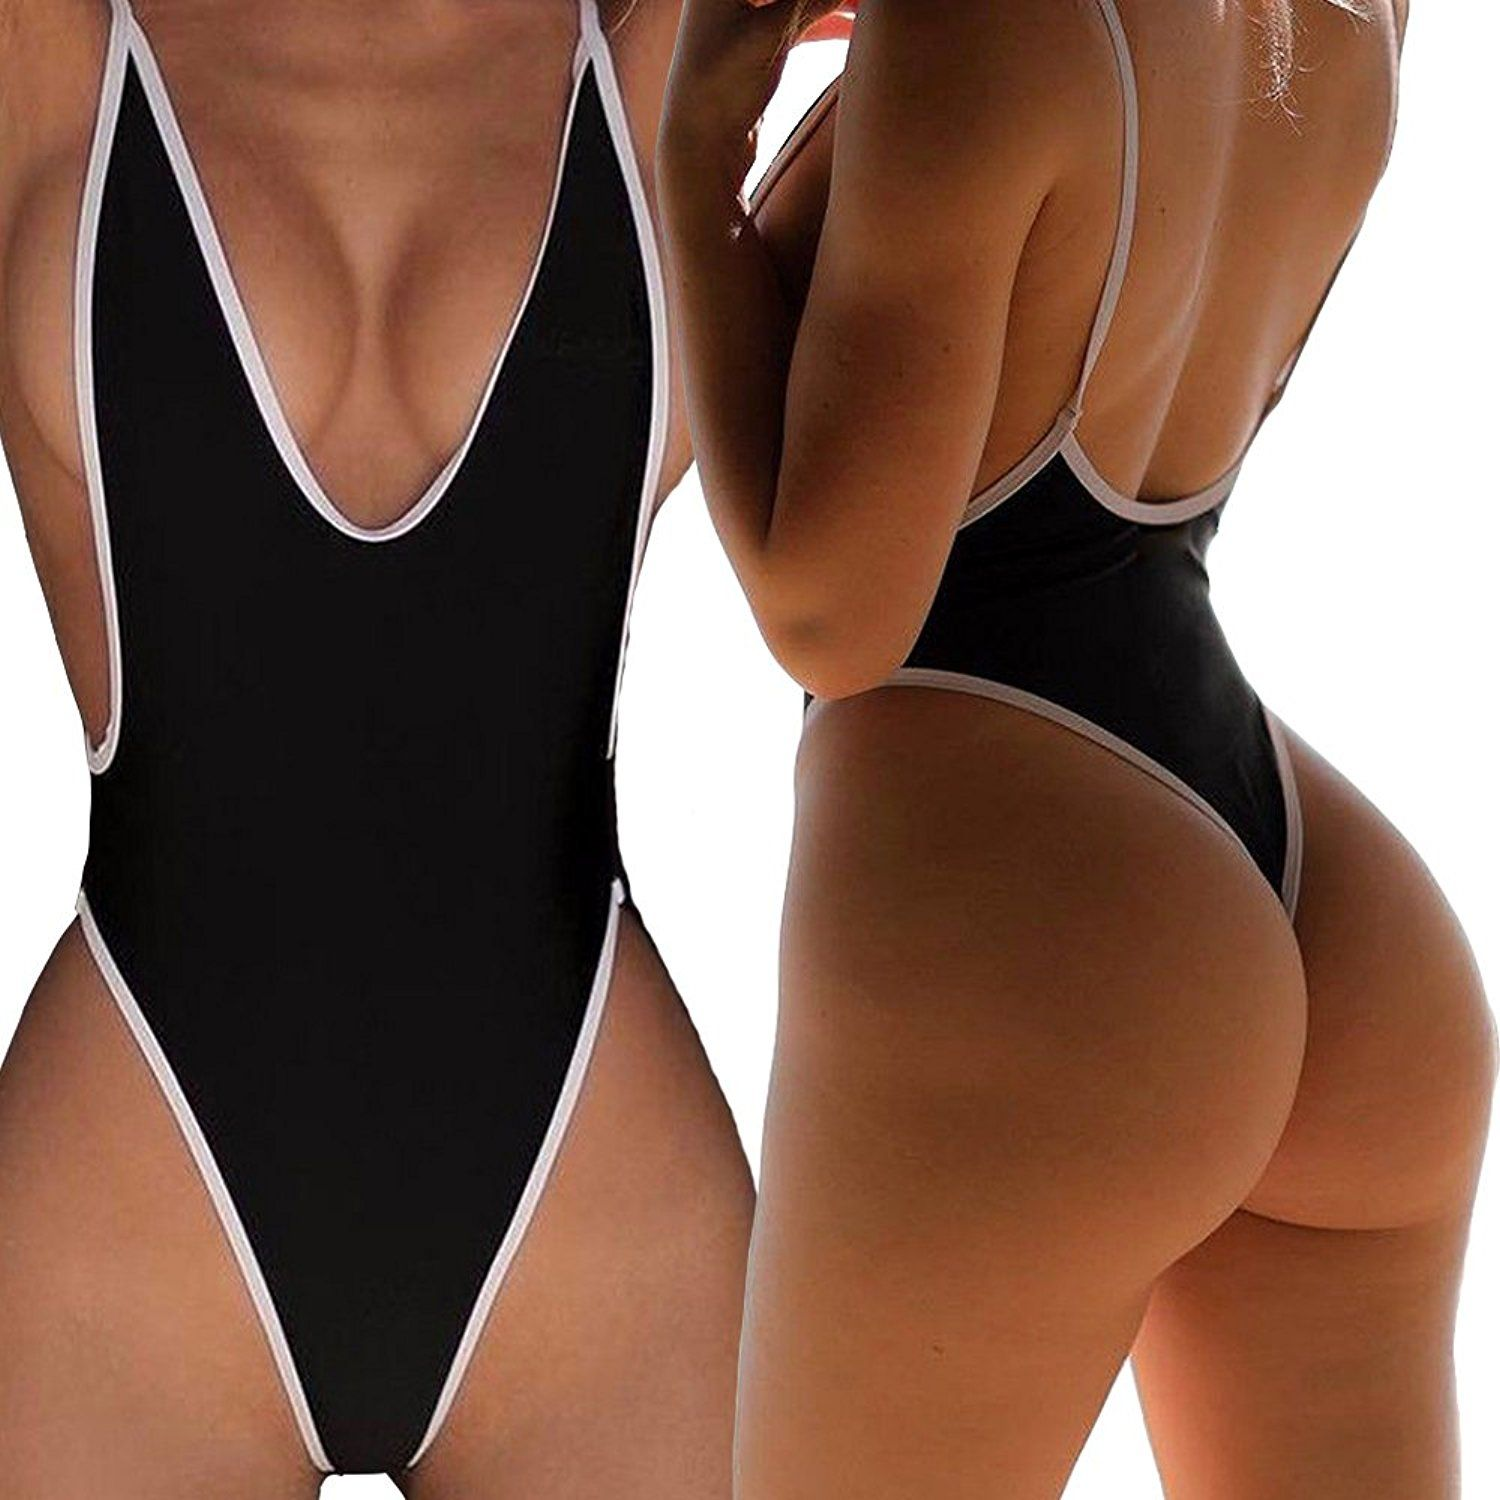 54b2a48c5a562 CROSS1946 Sexy Womens Monokini Deep V One Piece Backless Cheeky Swimwear  Semi Thong Bikini at Amazon Women's Clothing store: